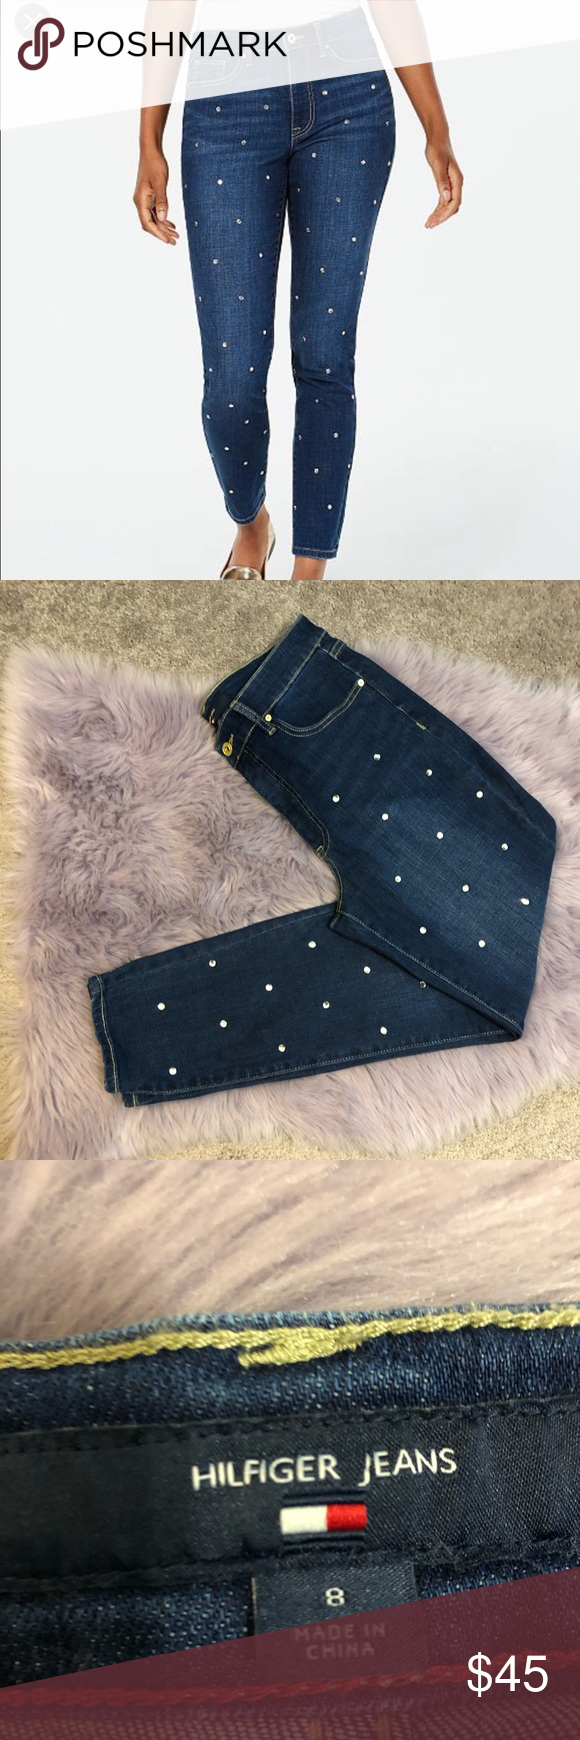 66a04f591 Tommy Hilfiger Skinny Tribeca Embellished Jeans Worn only once. They are  too big for me